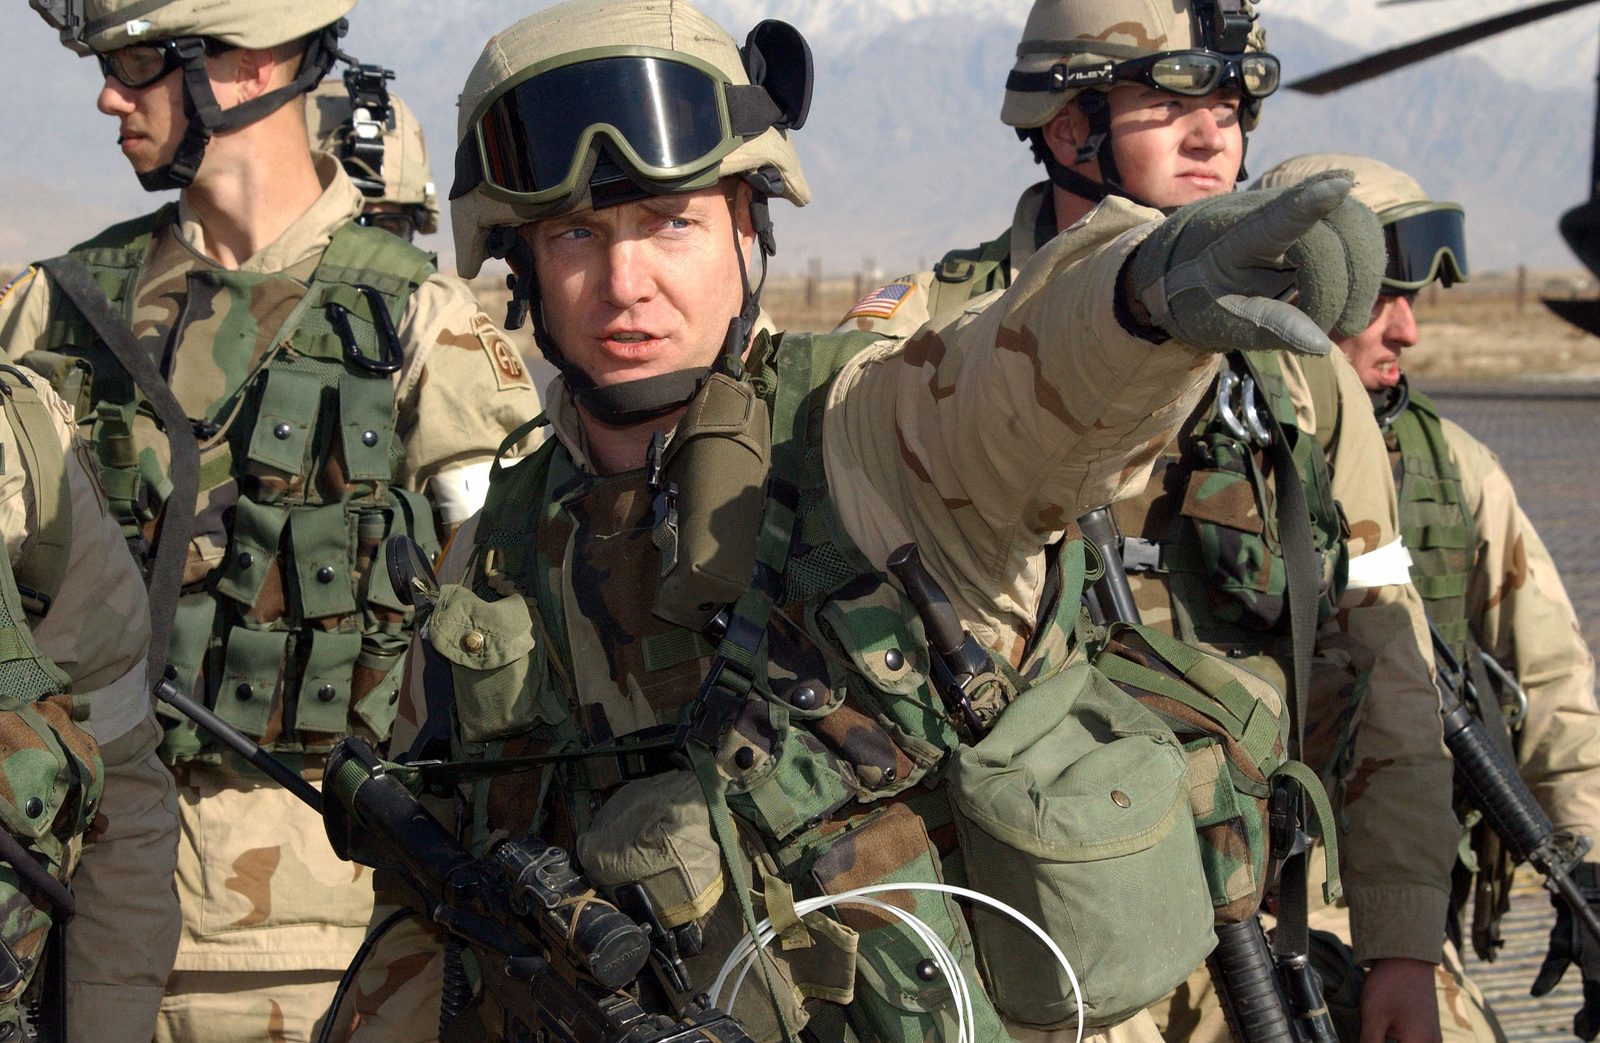 """First Sergeant (1SG) Bruce Meyers and his men, assigned to """"C"""" Company, 2nd Battalion, 504th Parachute Infantry Regiment (PIR), 82nd Airborne Division, armed with 5.56 mm M-4 carbines, conduct a Quick Reaction Force (QRF) mission at Bagram Airfield in Kabul, in support of Operation ENDURING FREEDOM"""